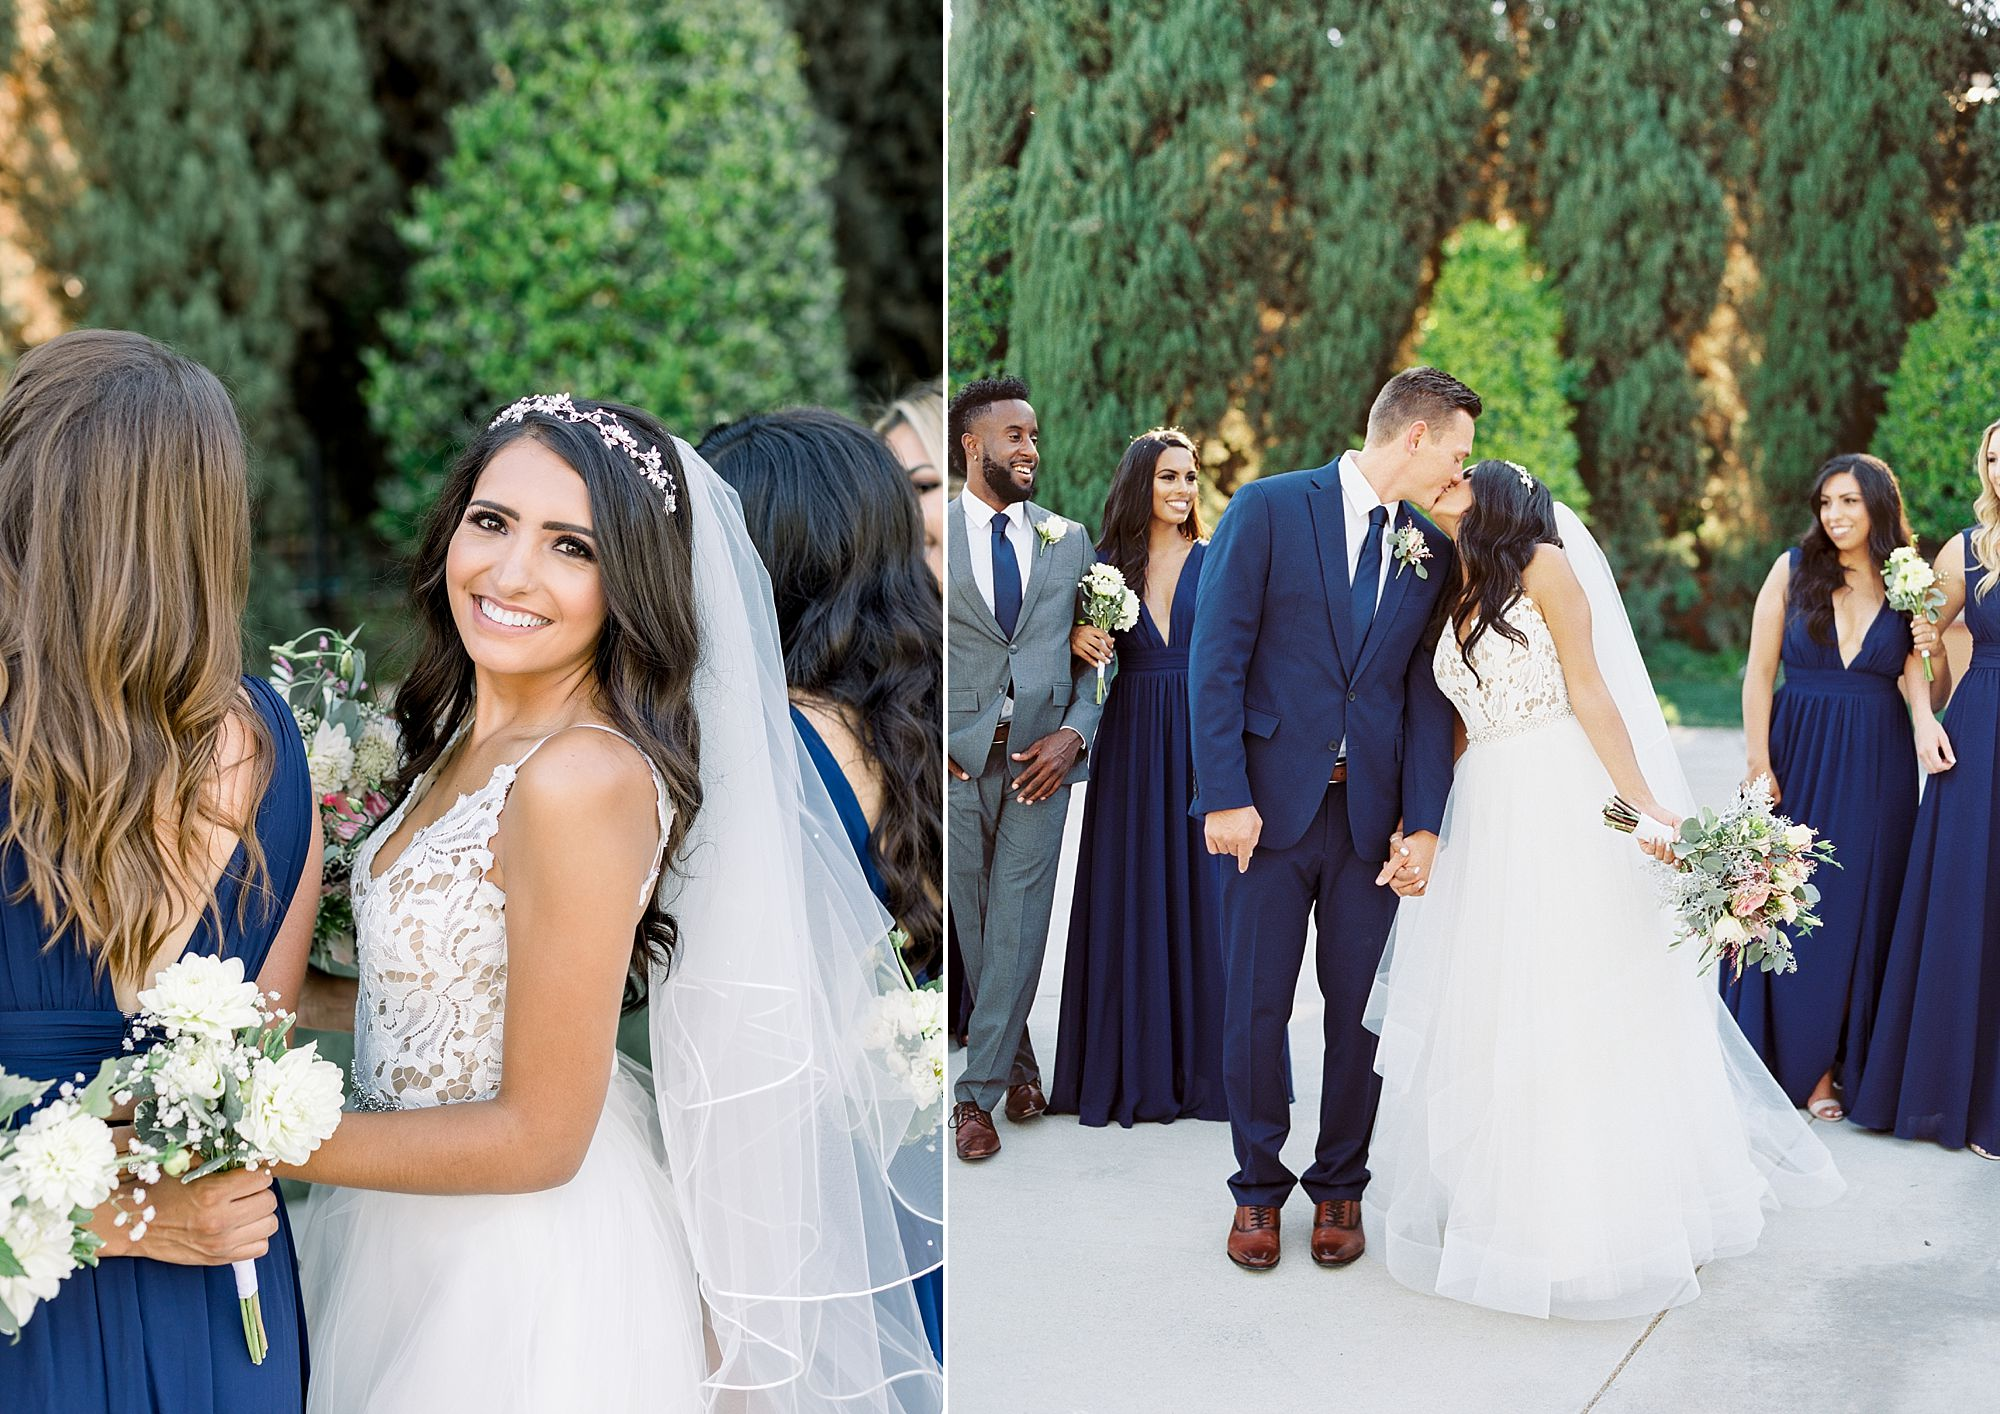 The River Mill Wedding Stockton - Ashley Baumgartner - Stockton Wedding Photographer - Sacramento Wedding Photography - Hybrid and Film Photographer - Sacramento Film Photographer_0028.jpg